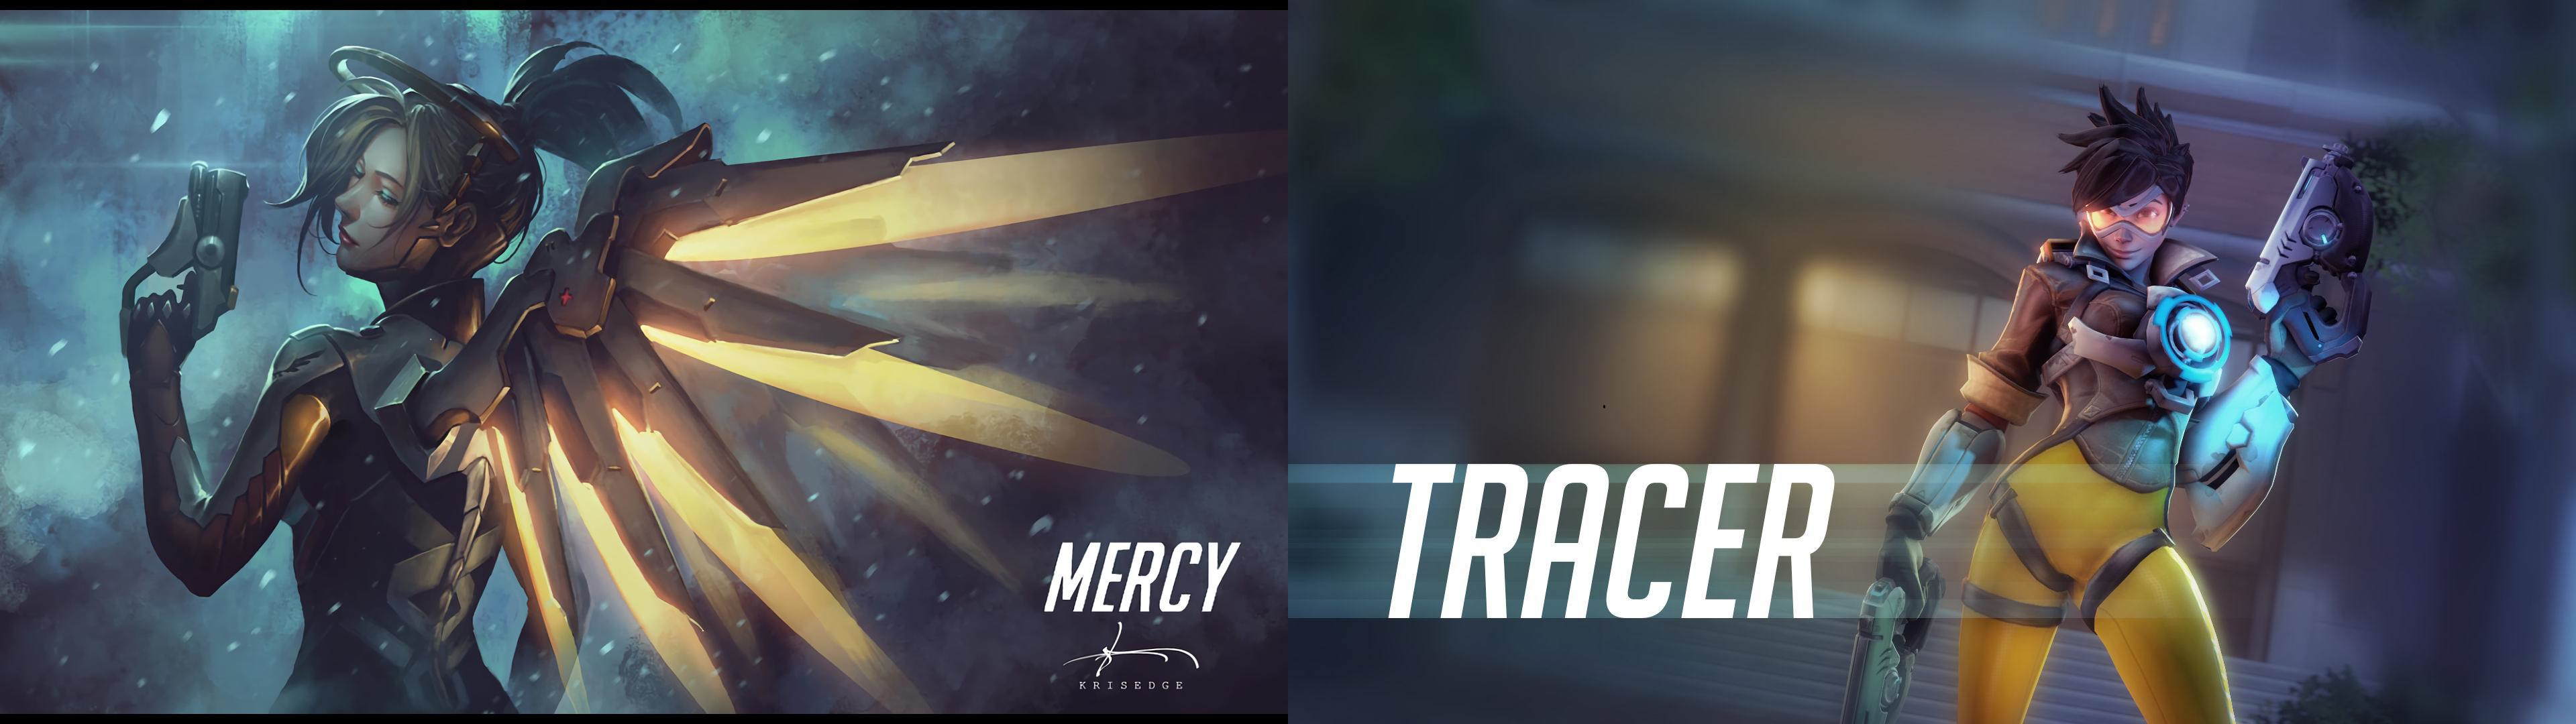 Mercyracer Dual Monitor Background by IDarkStalker Mercyracer Dual Monitor  Background by IDarkStalker